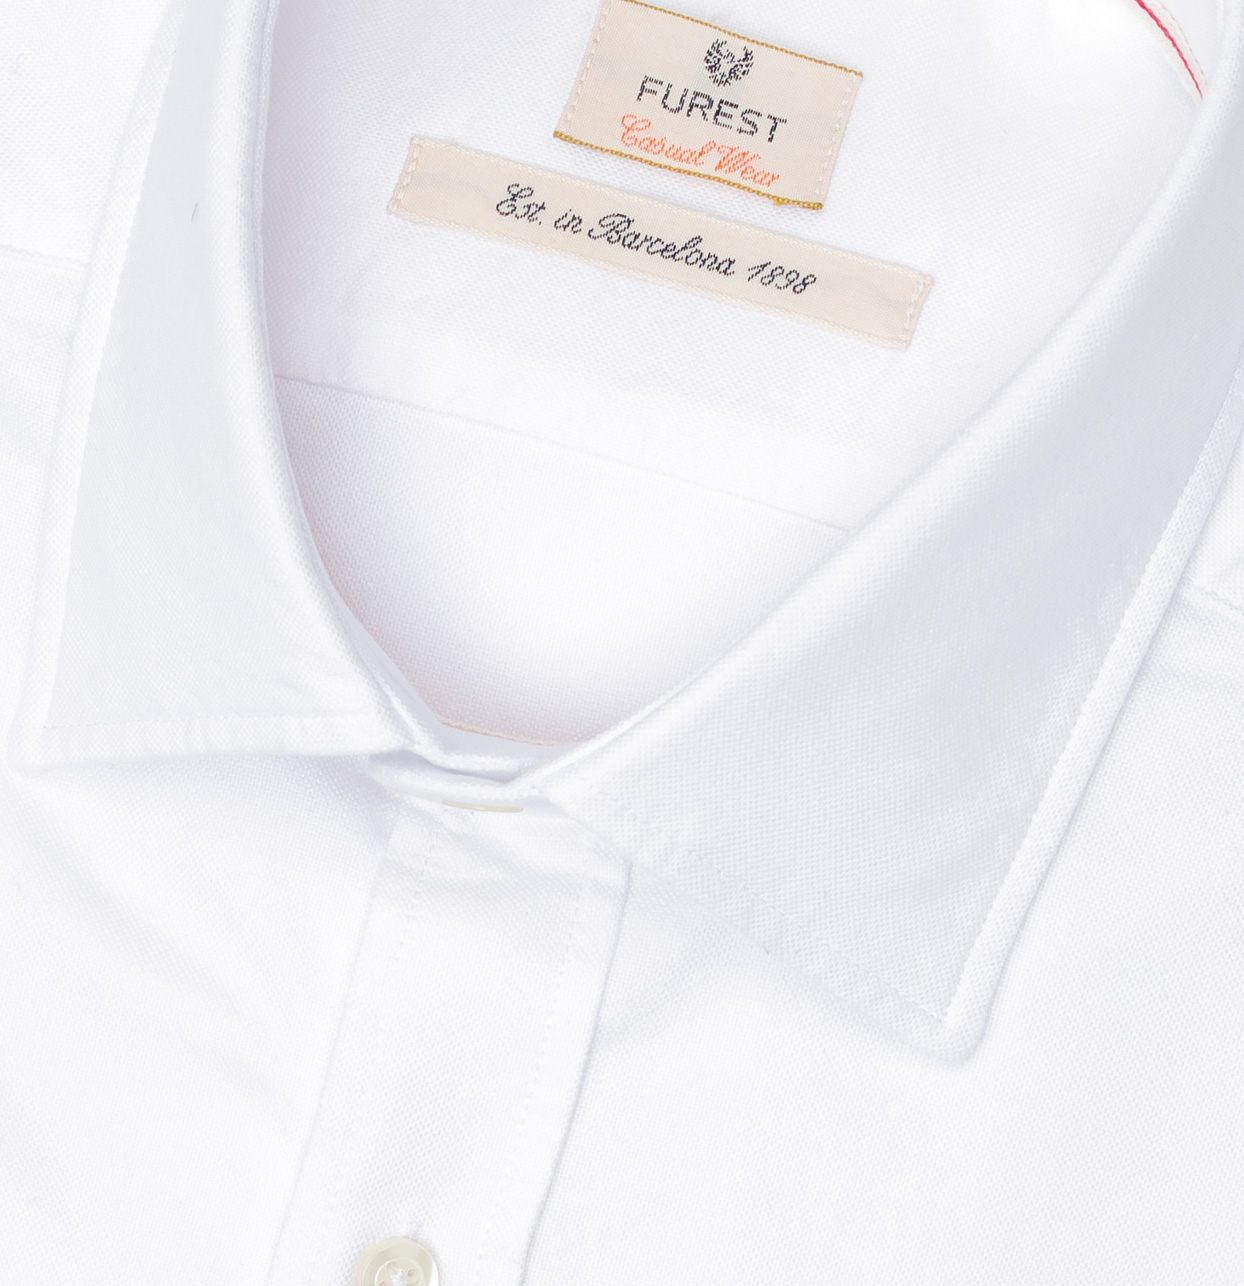 Camisa Casual Wear SLIM FIT Modelo PORTO tejido oxford color blanco, 100% Algodón. - Ítem1